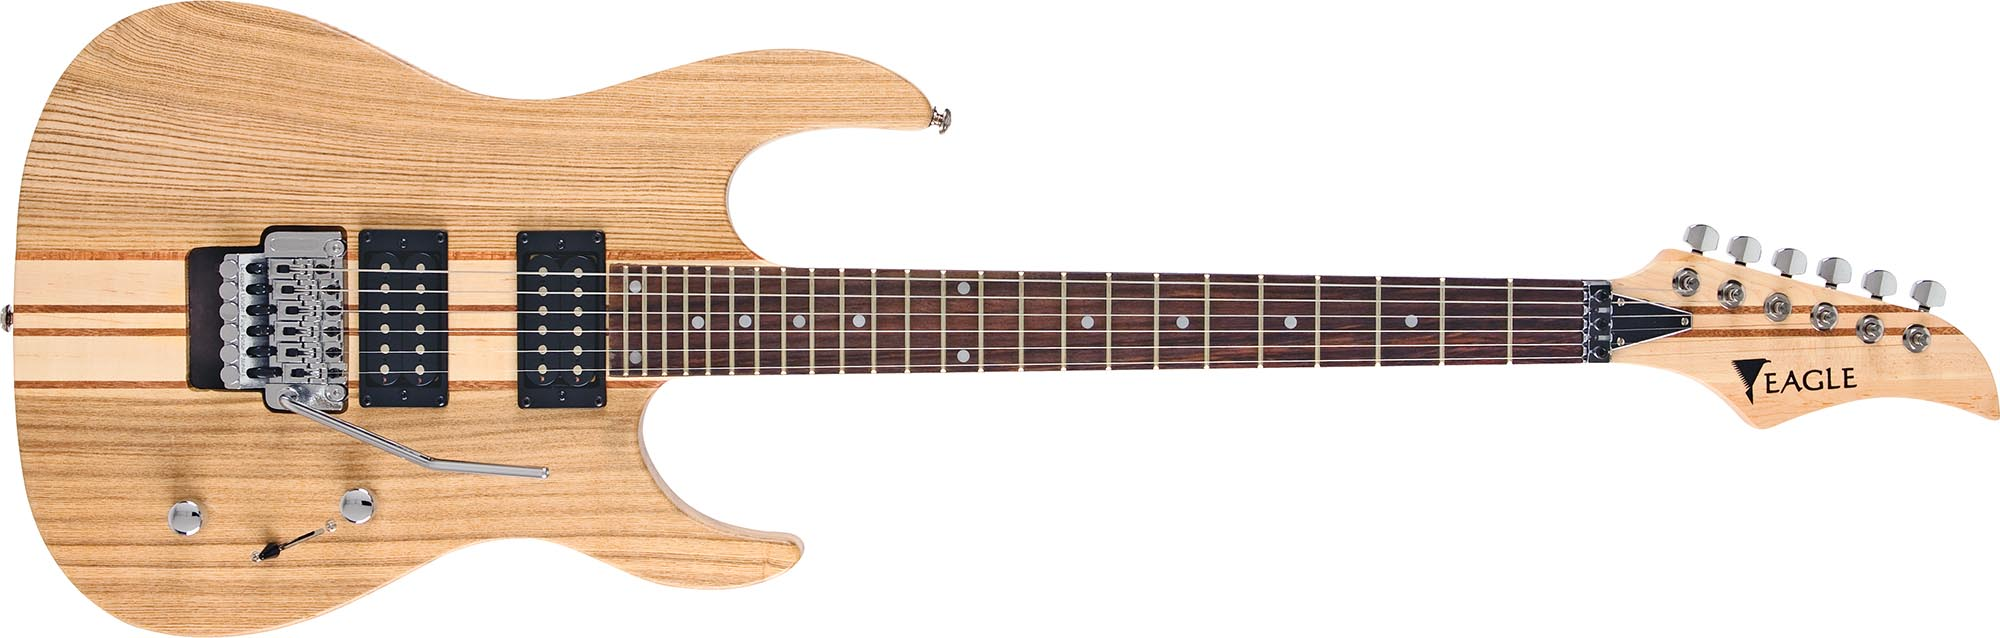 egt61 guitarra eletrica captador humbucker corpo inteirico floyd rose eagle egt61 nt natural visao frontal